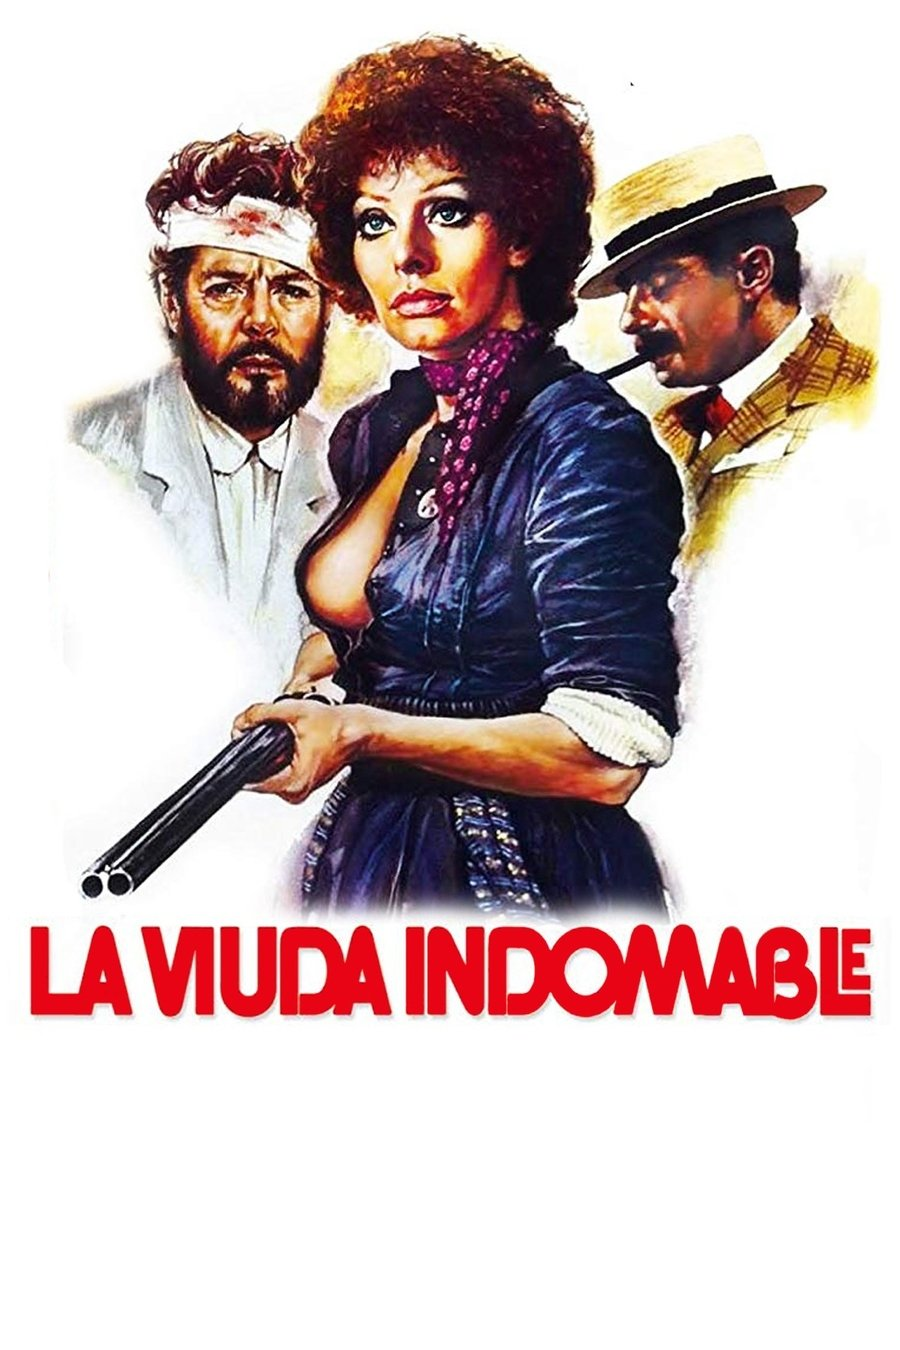 La viuda indomable